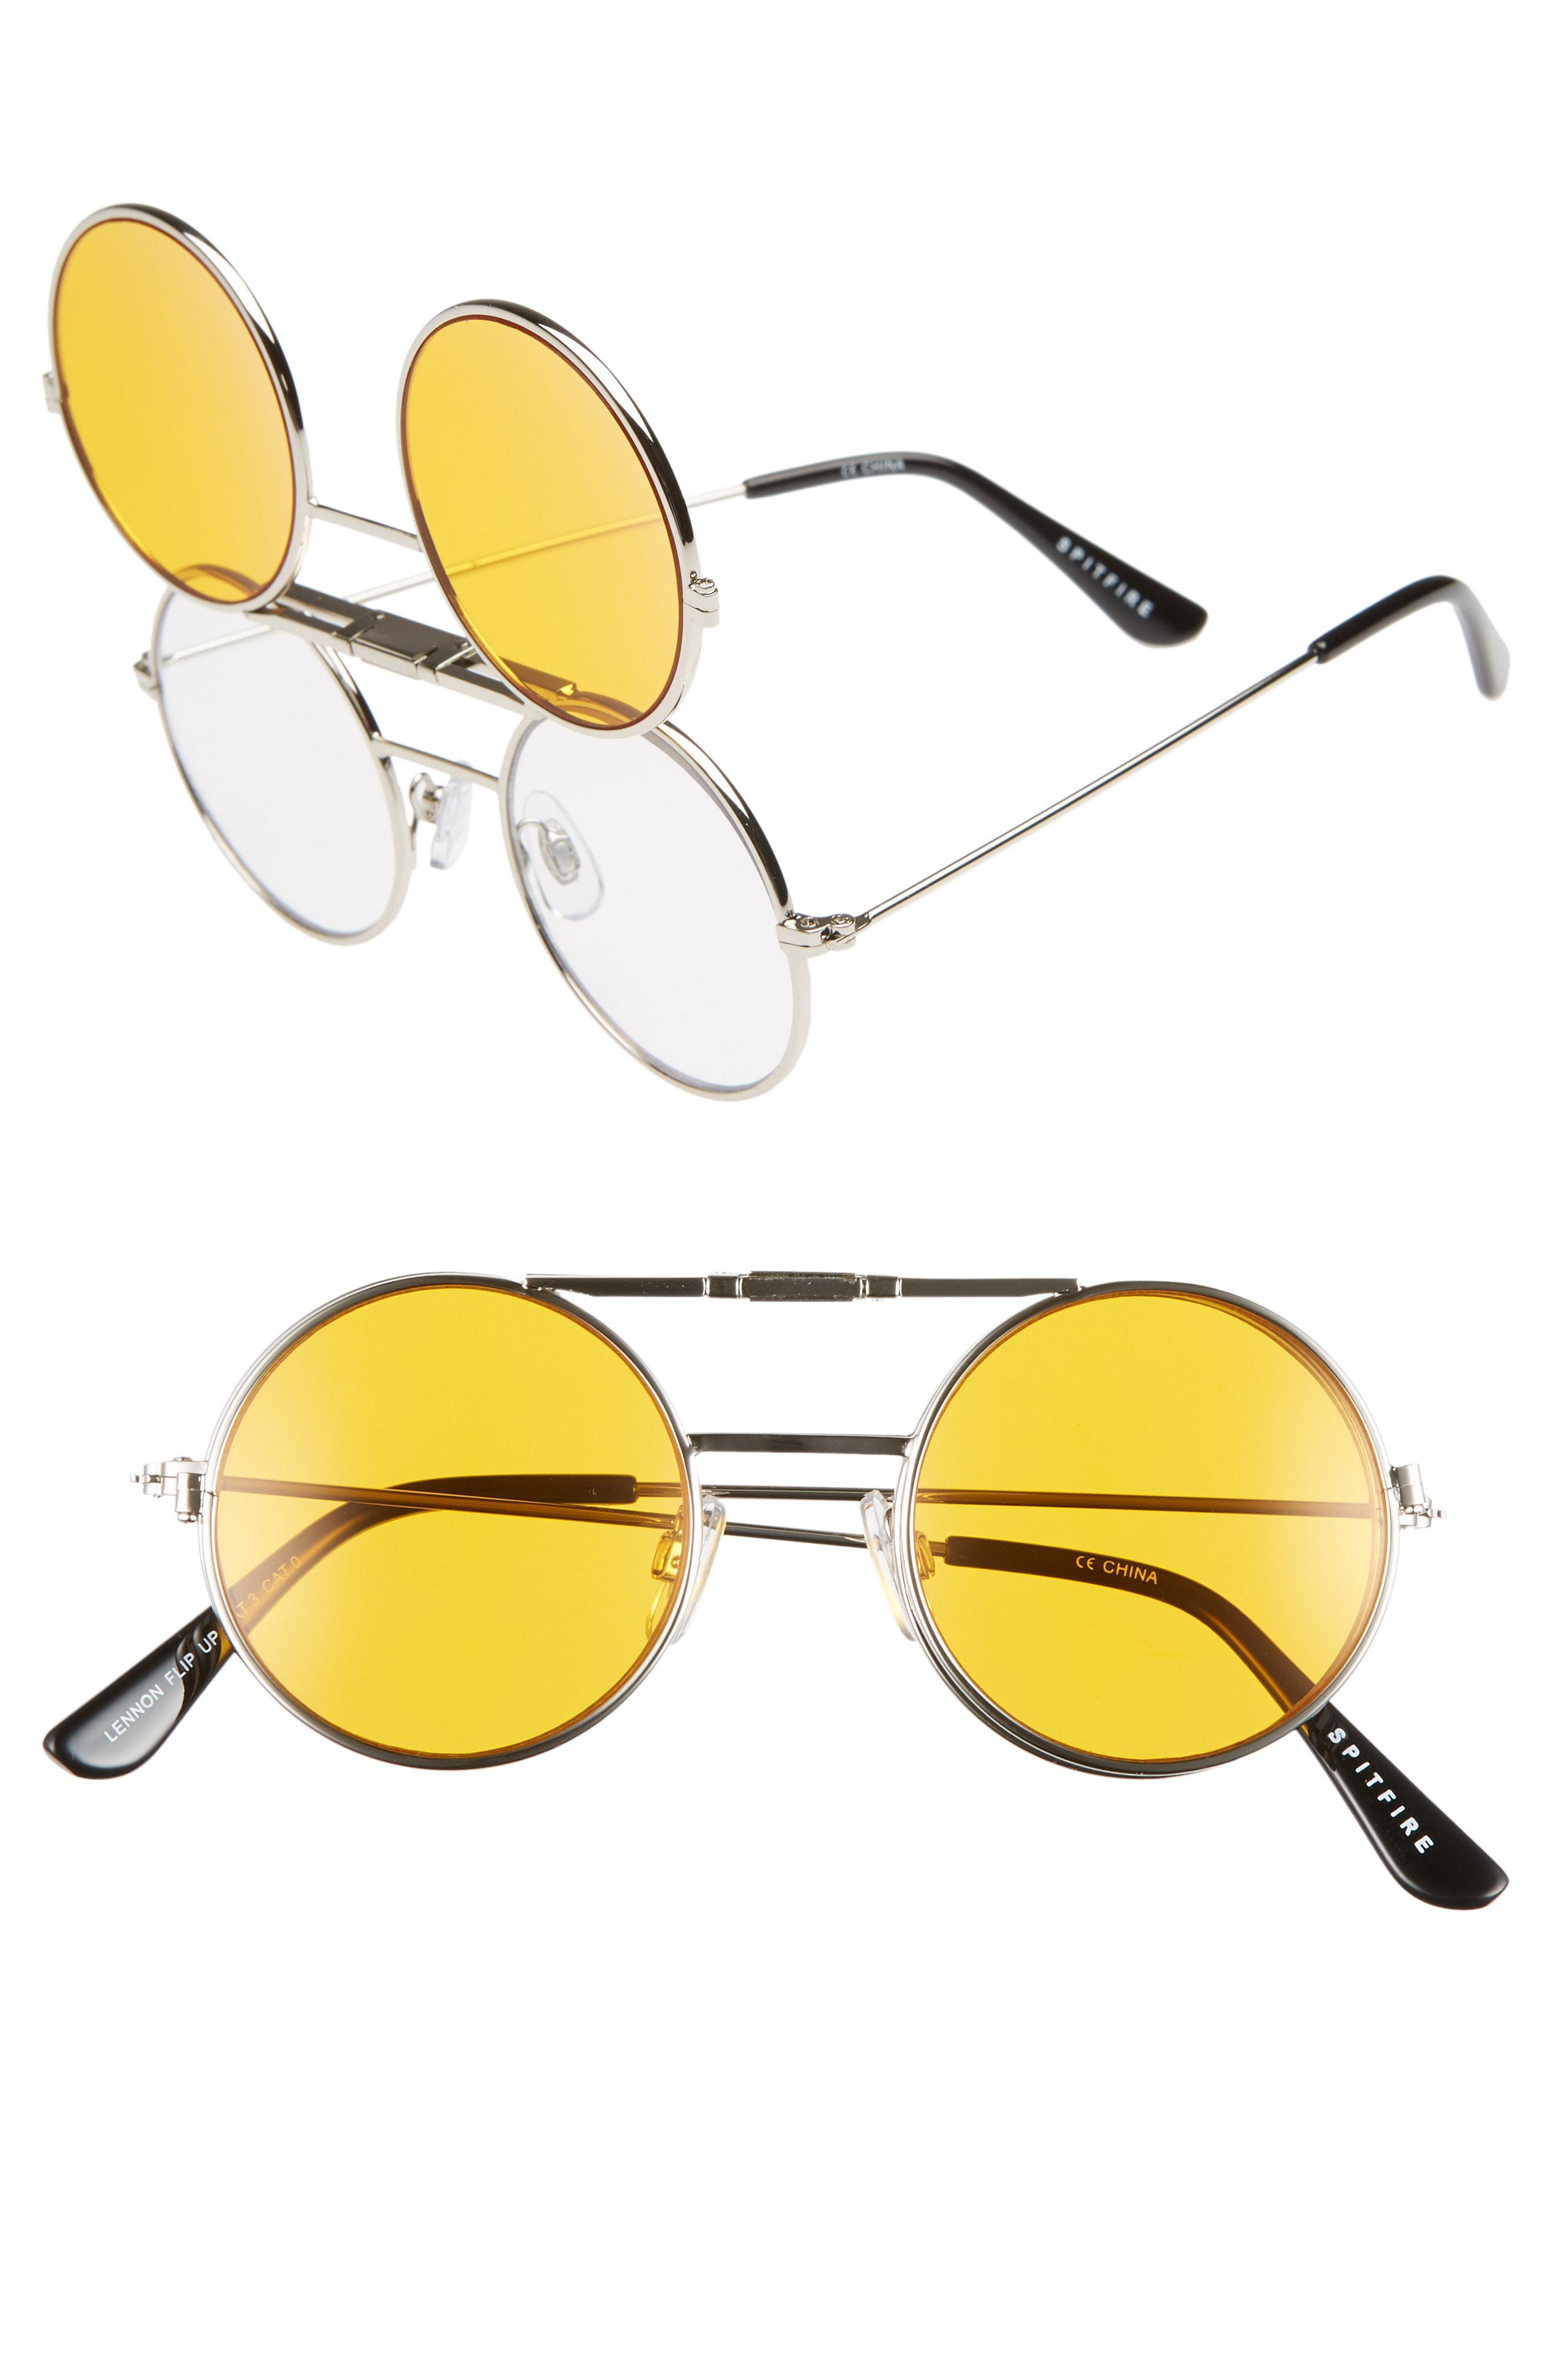 1a53415955 Lyst - Spitfire Lennon Flip 45mm Round Sunglasses - in Yellow